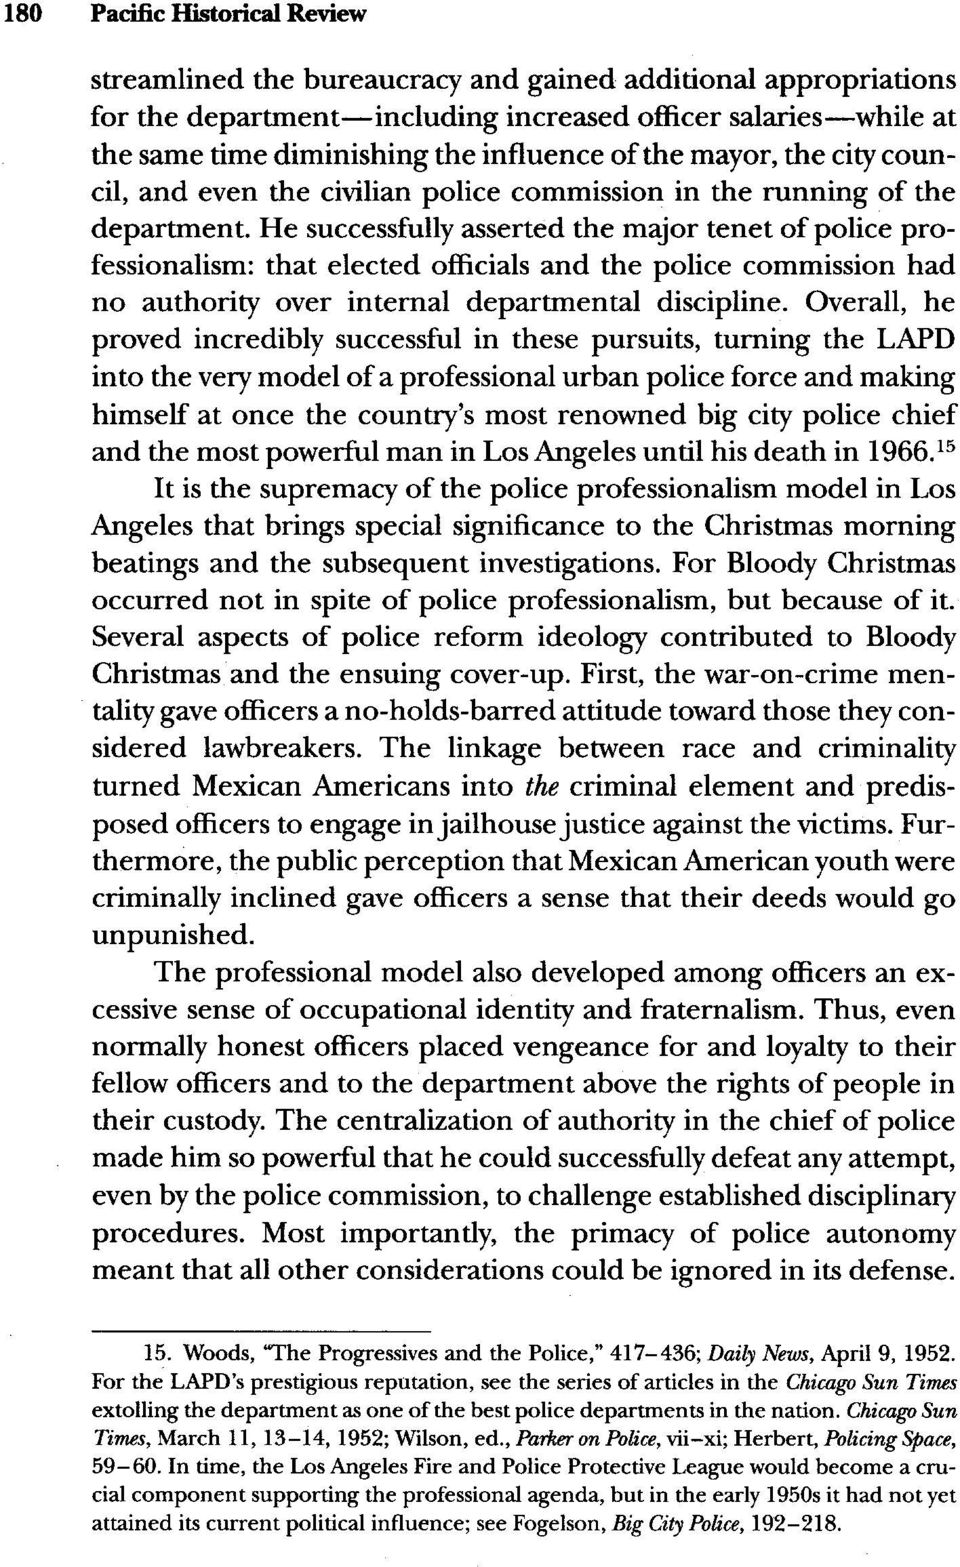 He successfully asserted the major tenet of police professionalism: that elected officials and the police commission had no authority over internal departmental discipline.